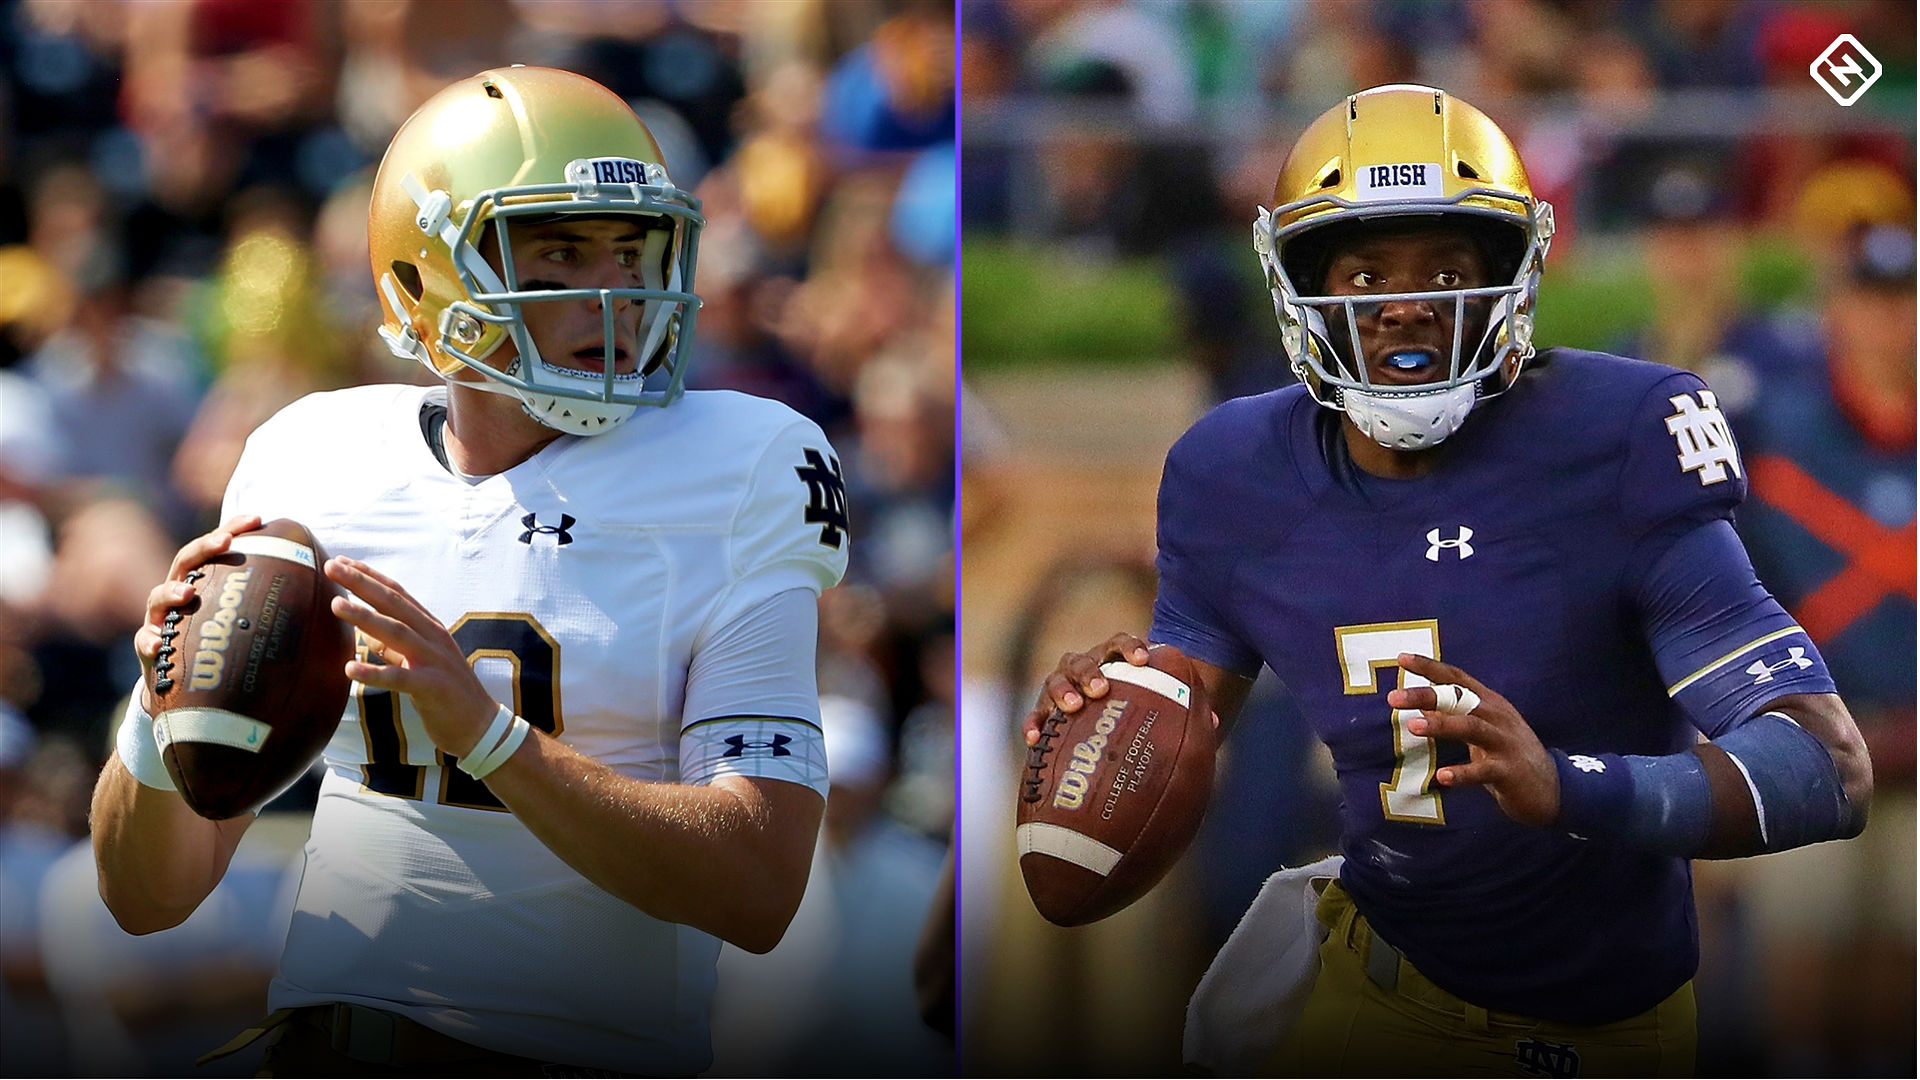 Ian Book sparks Notre Dame's offense, but Irish QB situation still unsettled